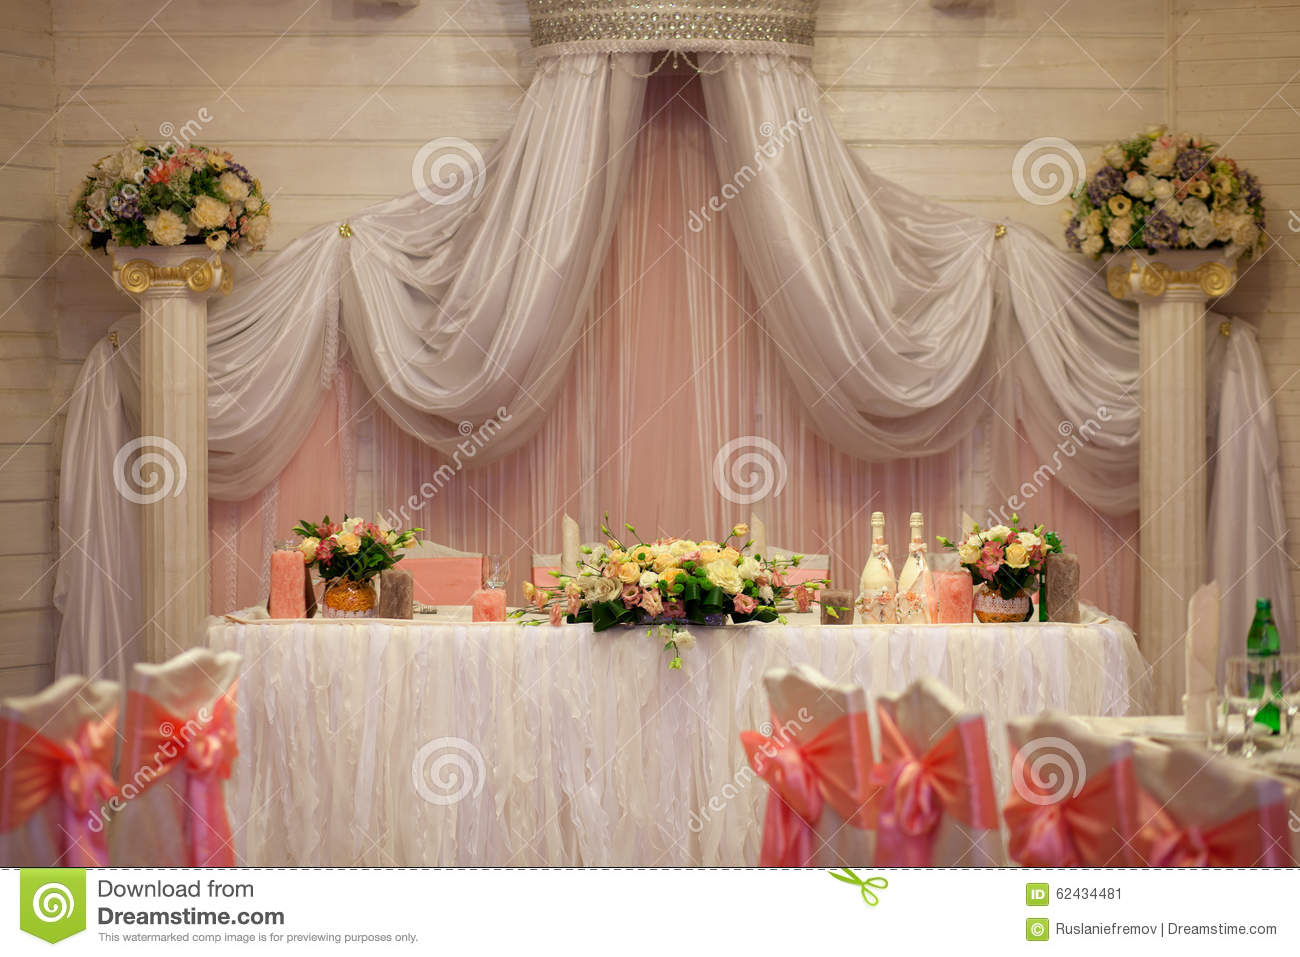 elegance table set up for wedding  flowers in the vase